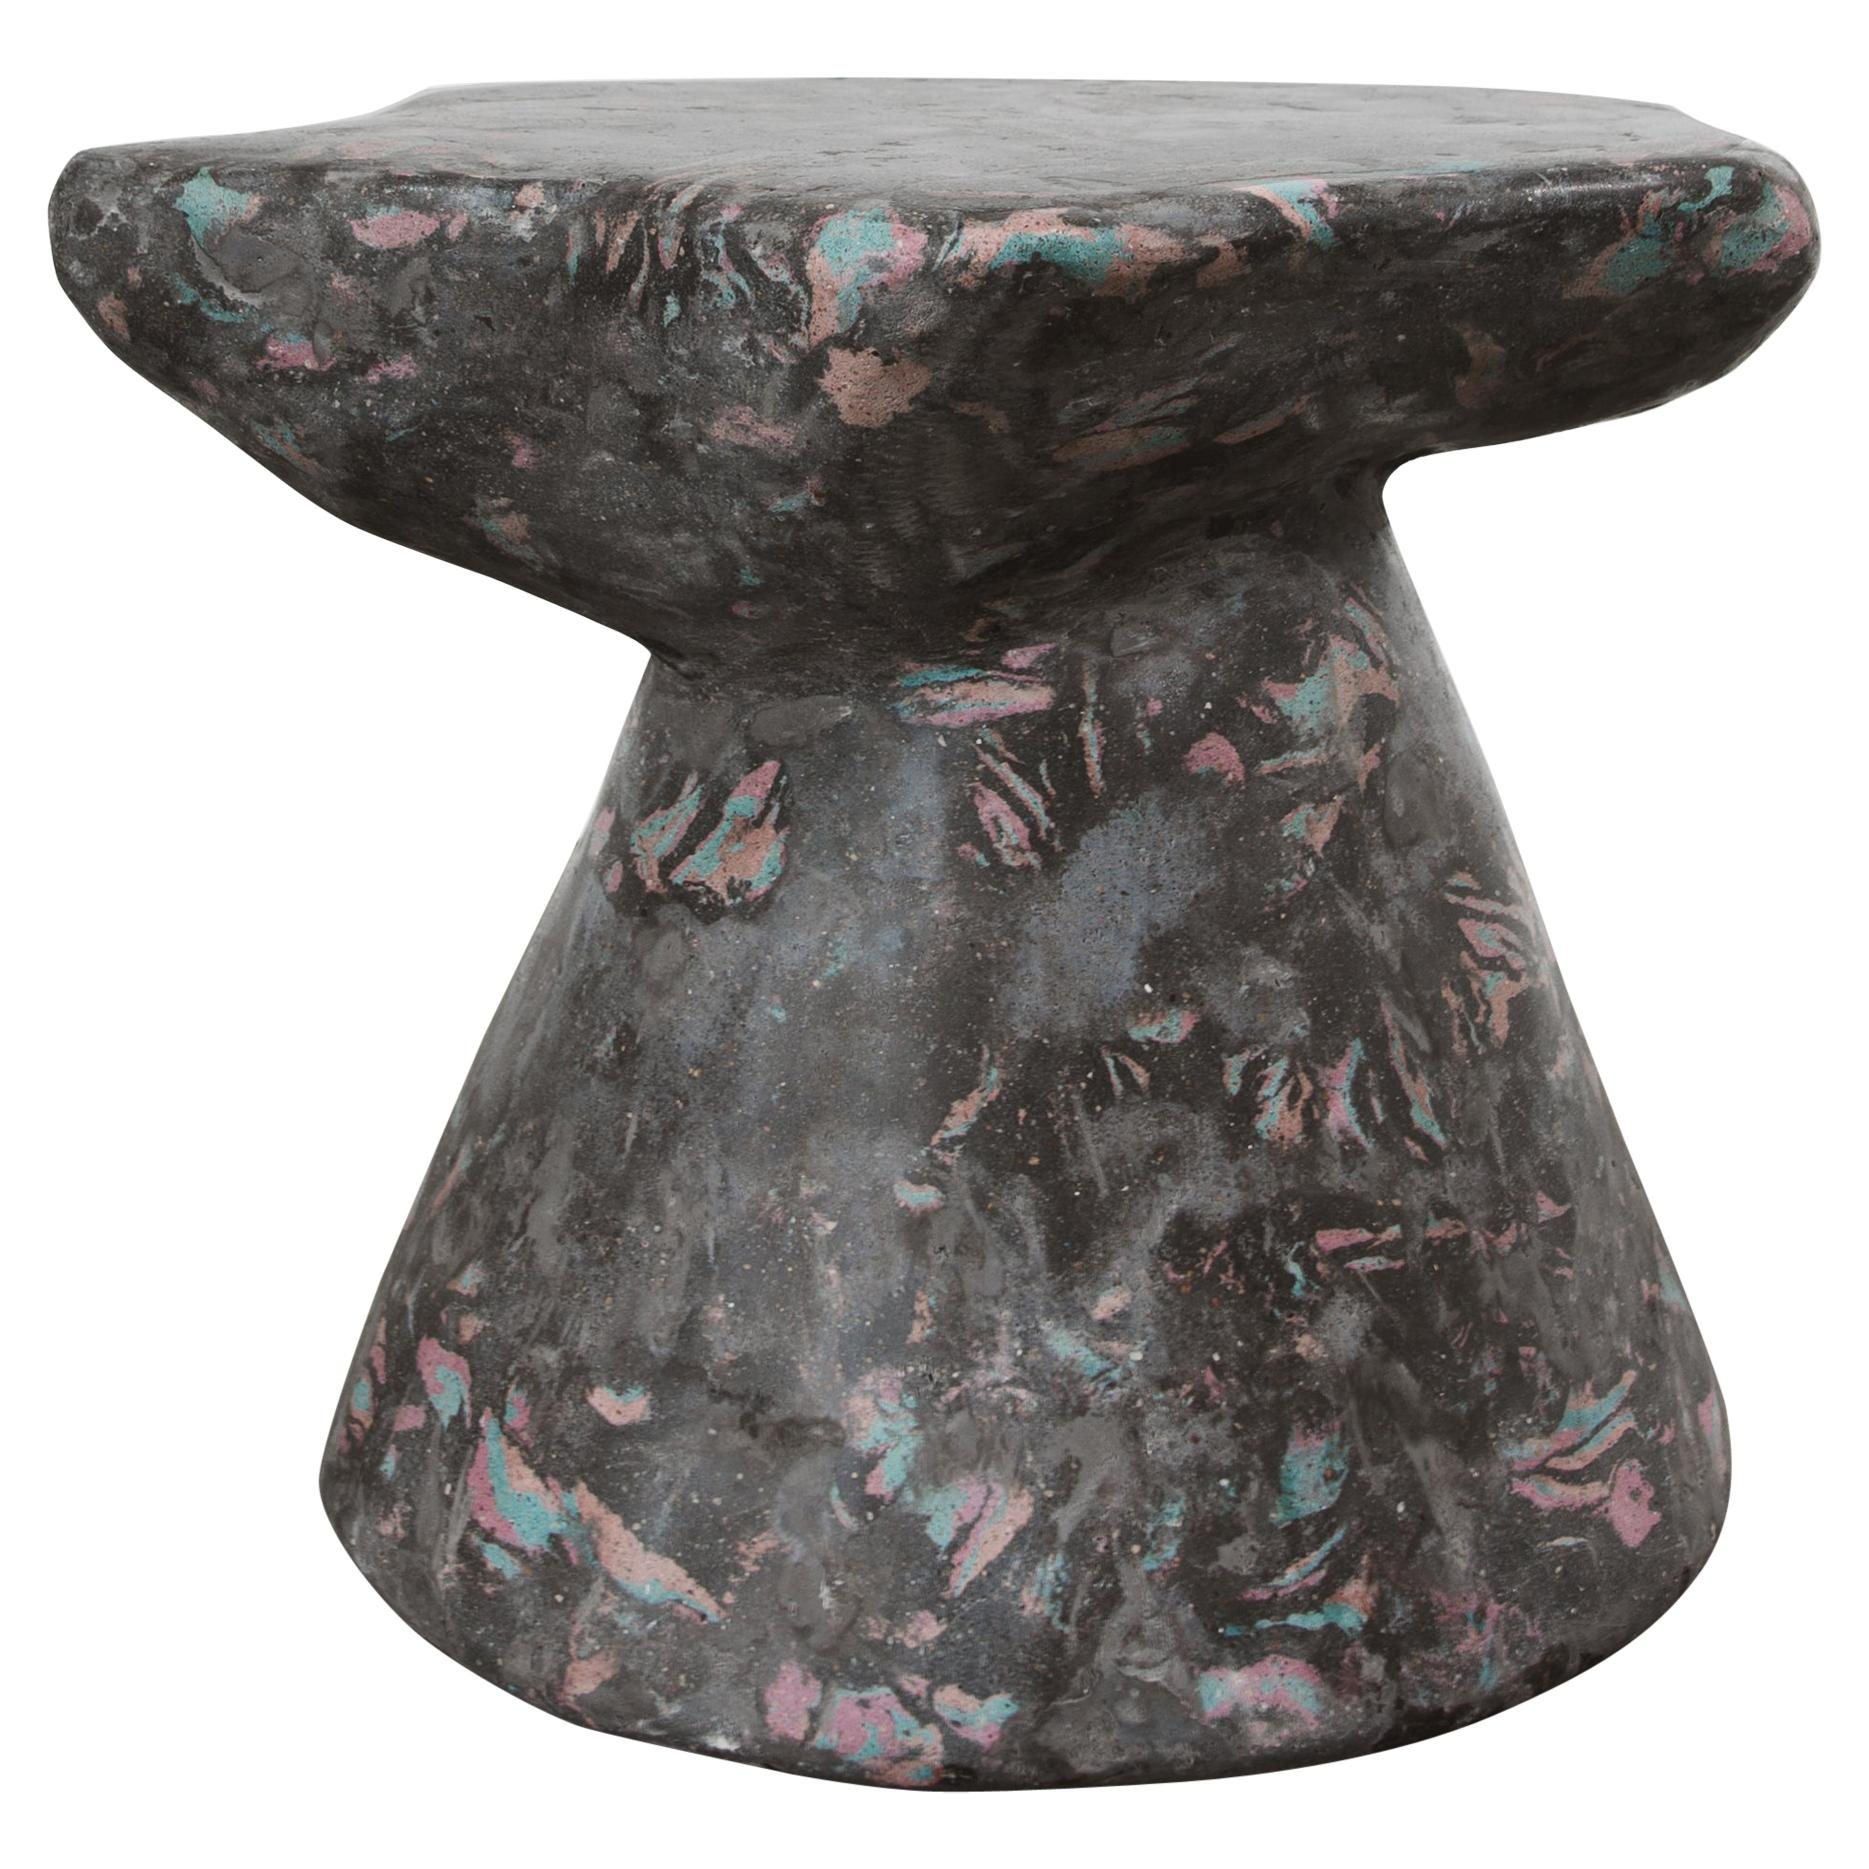 Plote Side Table in Scagliola, Cement for Indoor or Outdoor by Mtharu